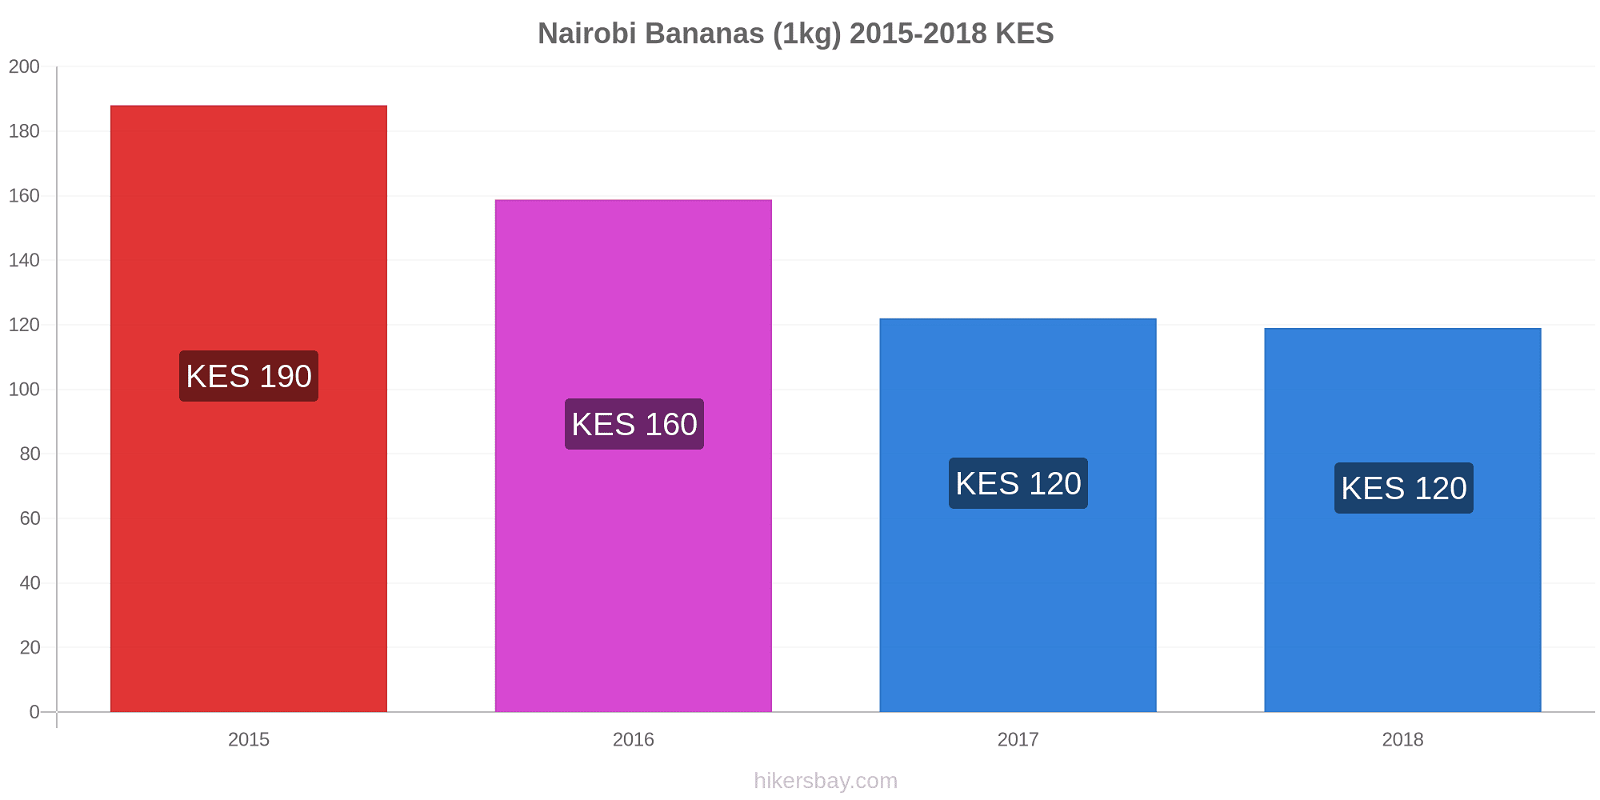 Nairobi price changes Bananas (1kg) hikersbay.com